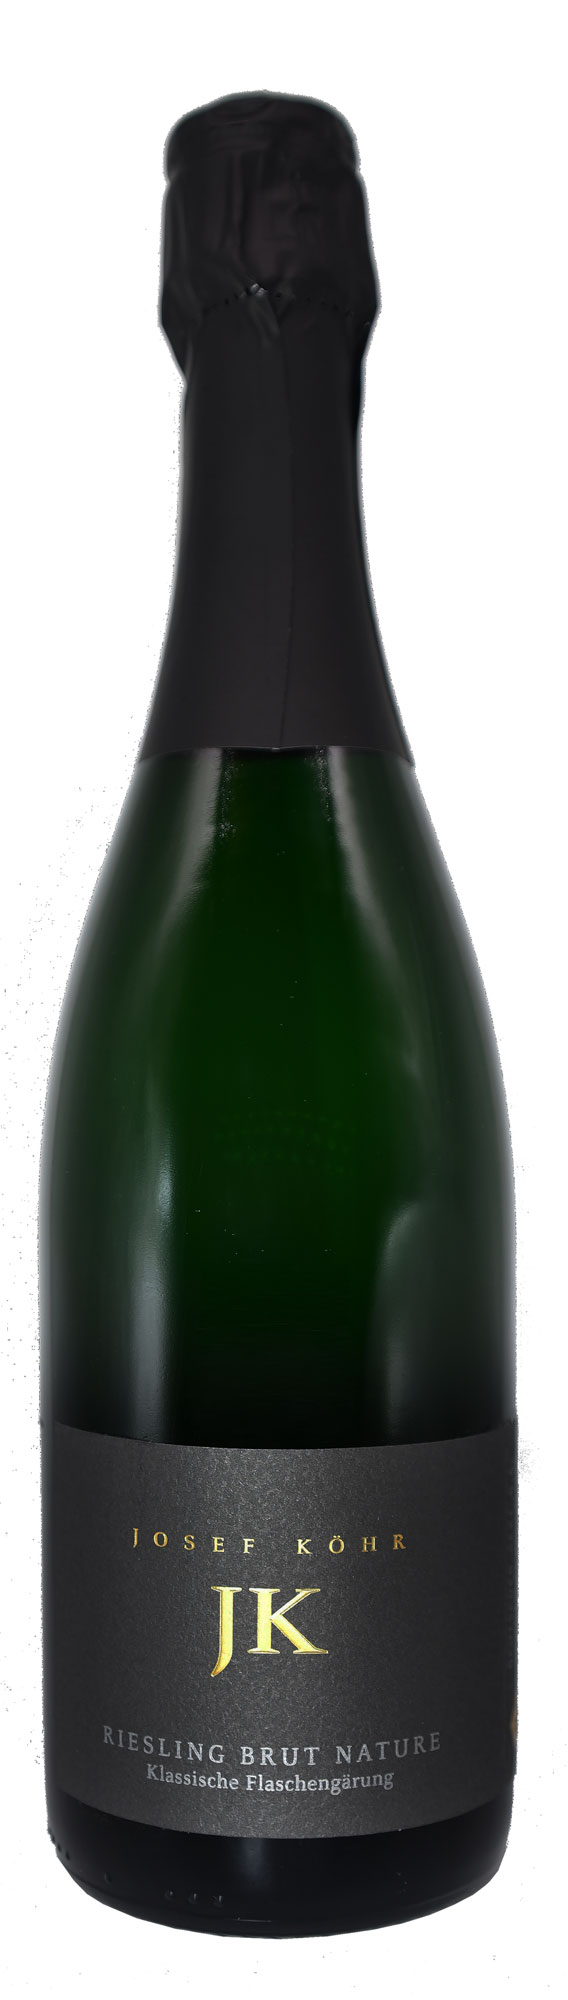 2018 Riesling brut nature